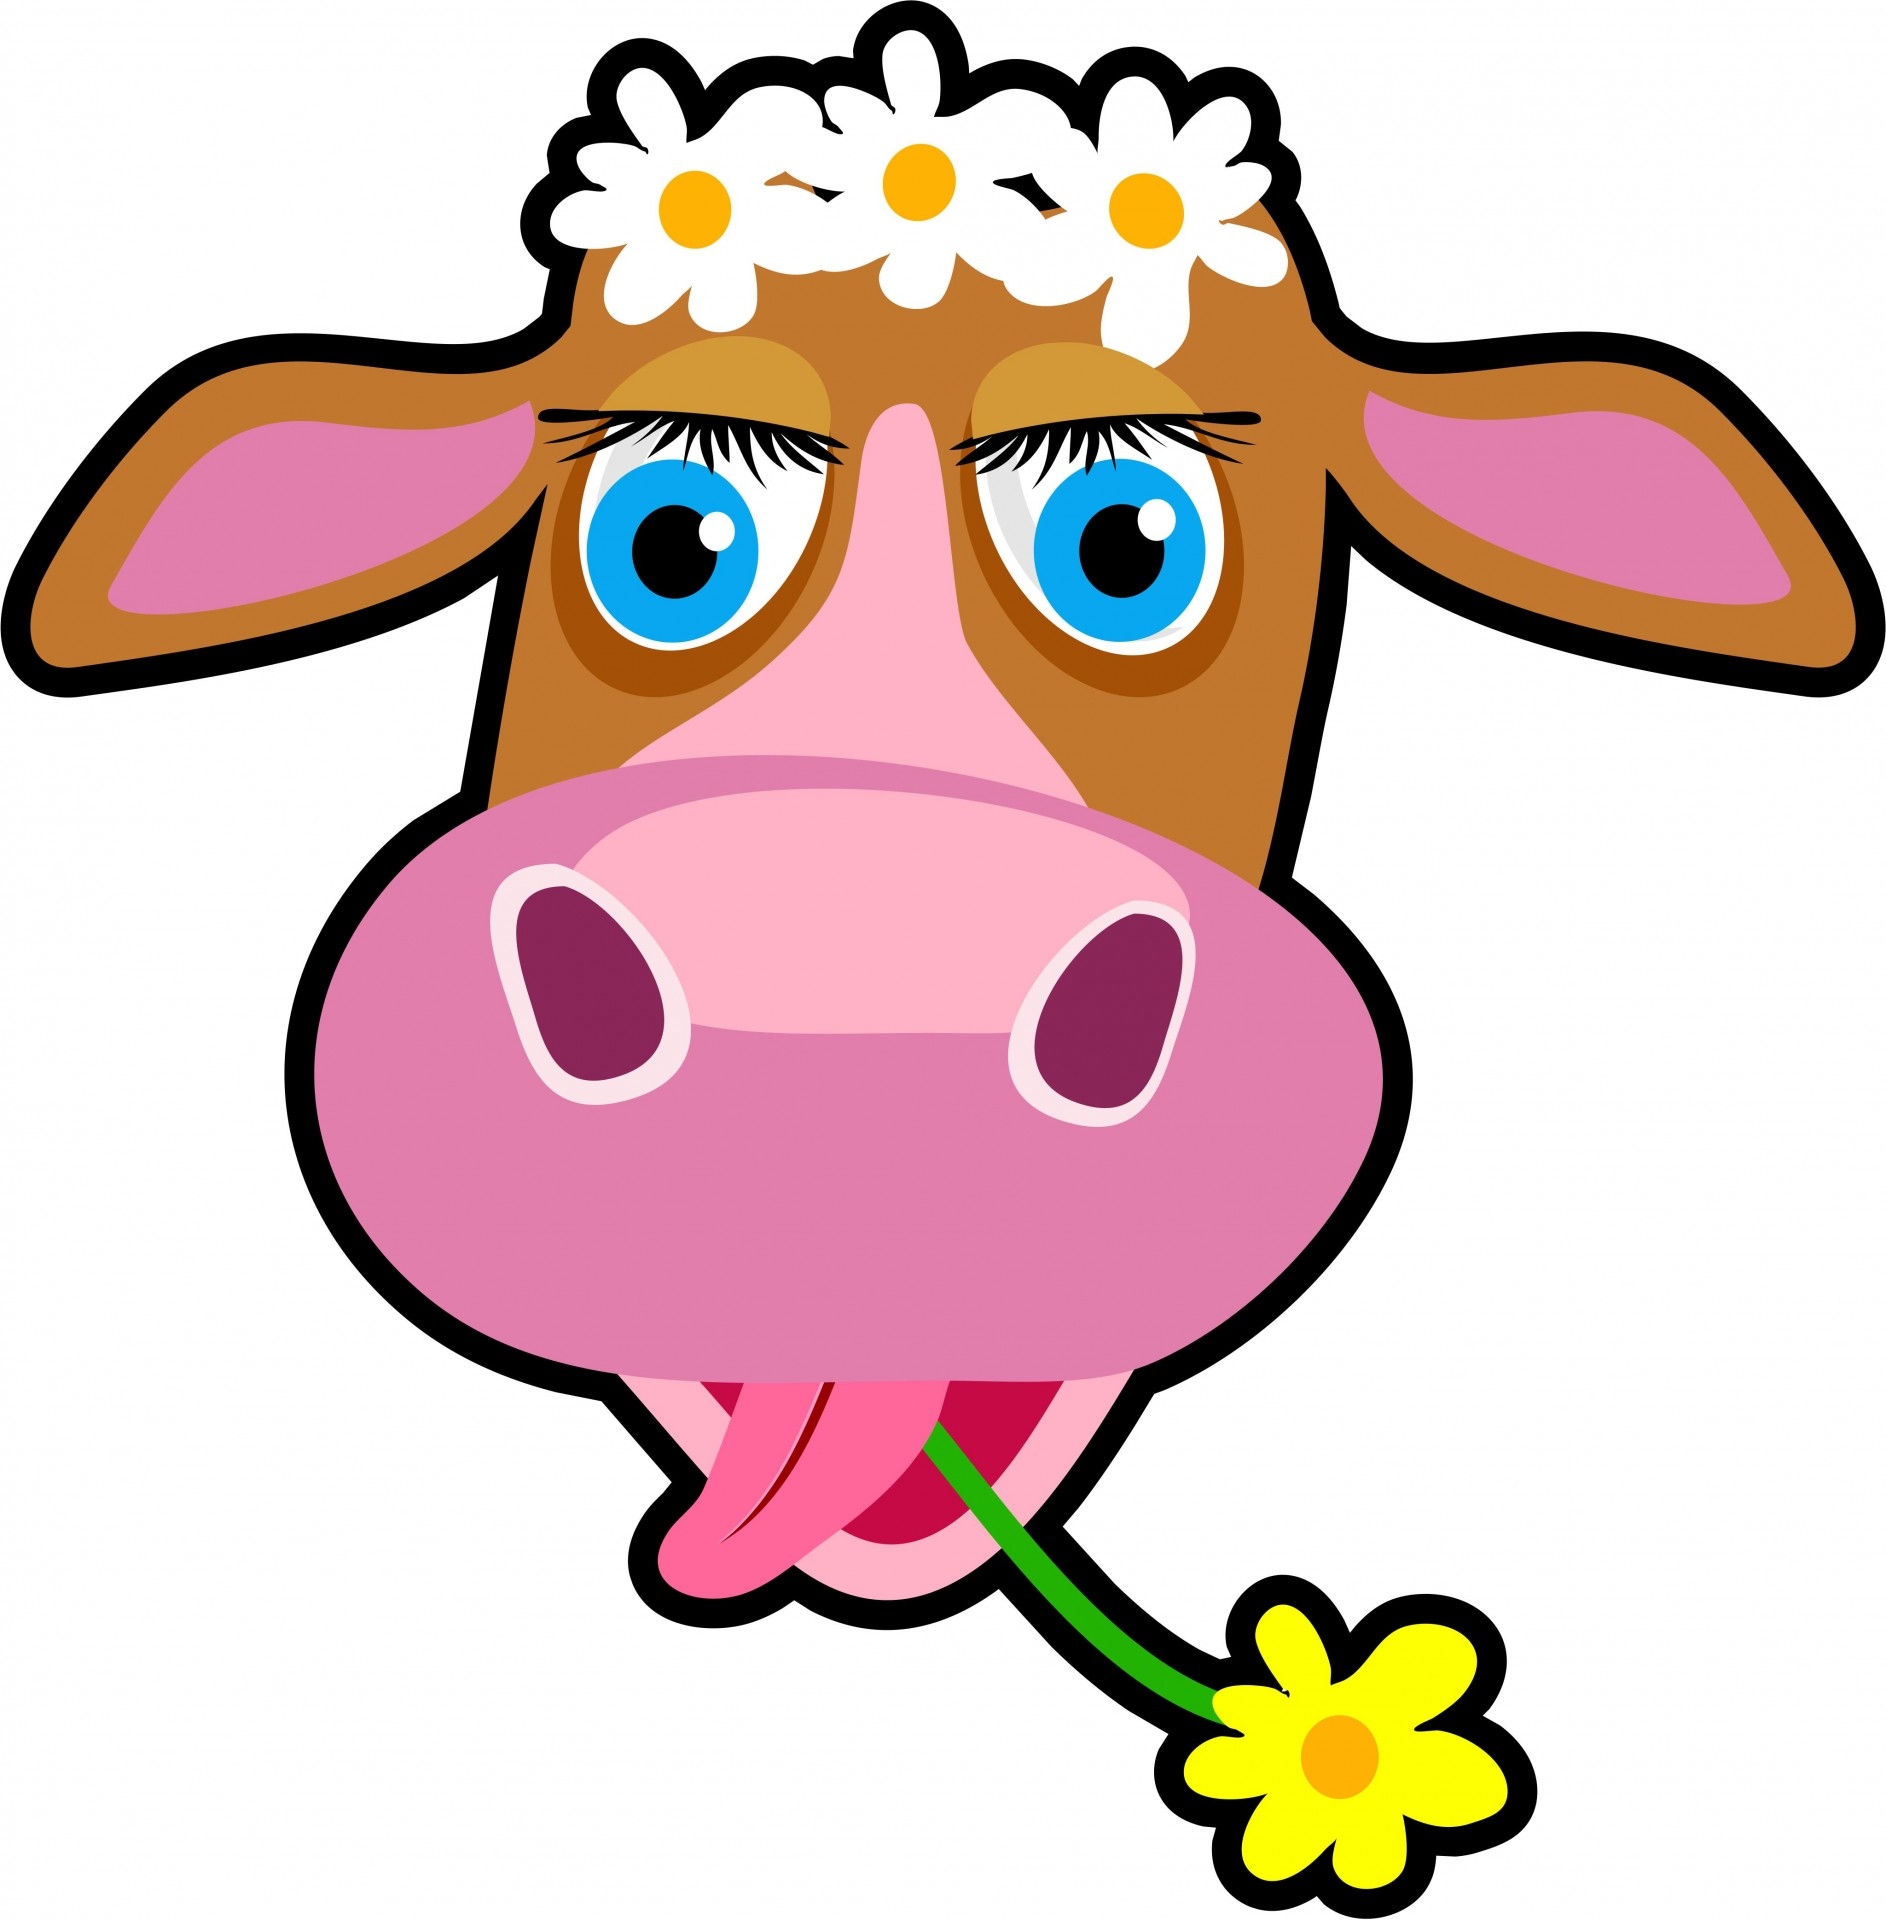 1886x1920 Cartoon Cow Clipart Free Stock Photo